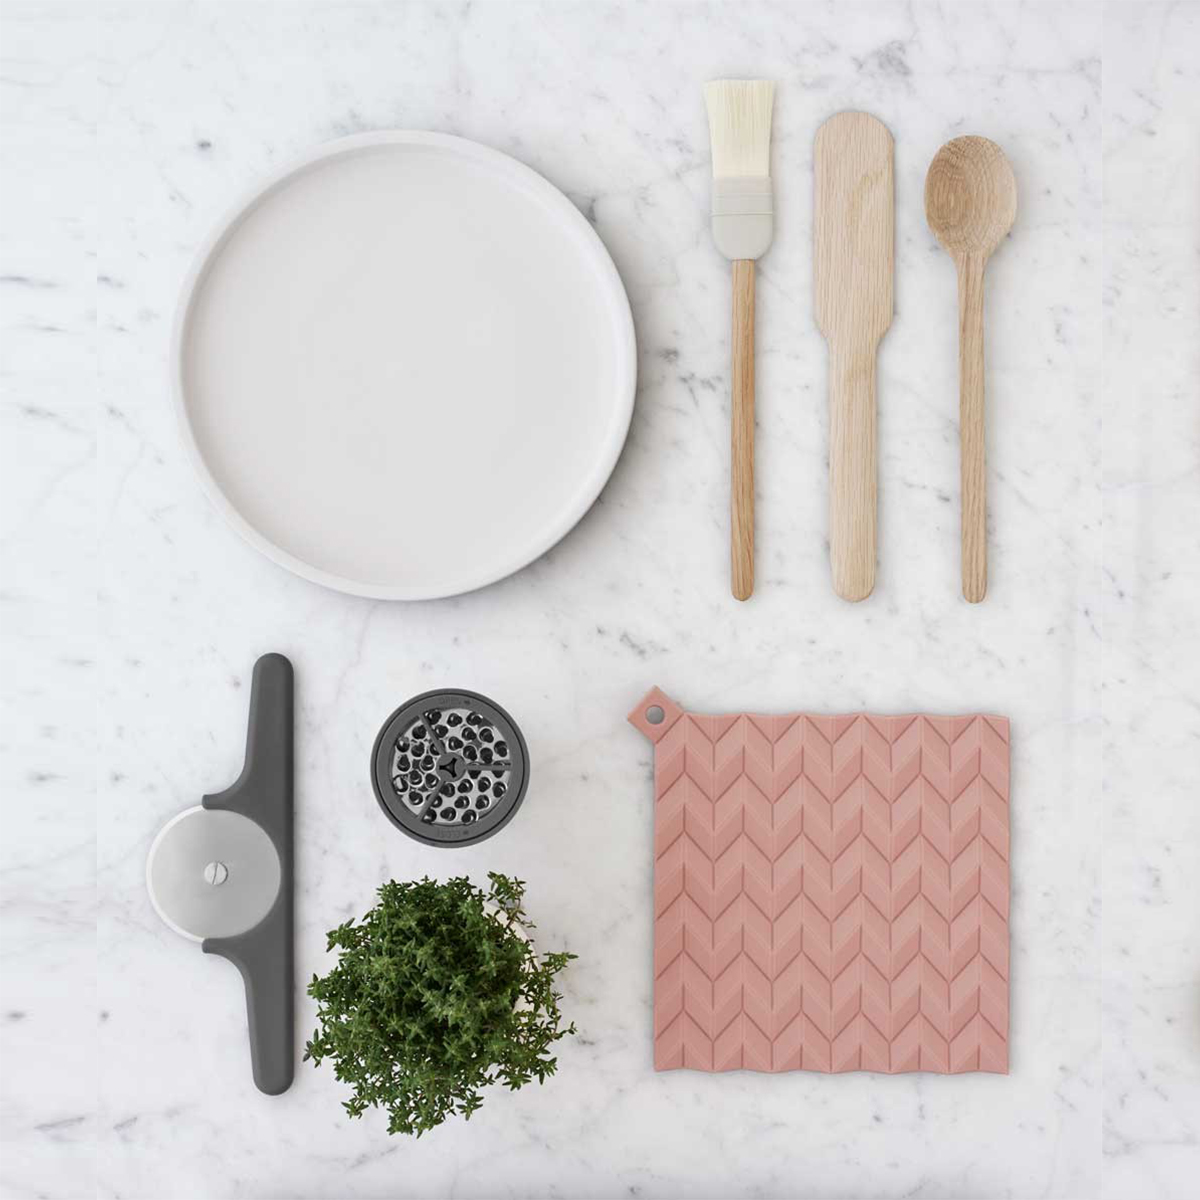 RigTig Kitchenware and Utensils for your kitchen